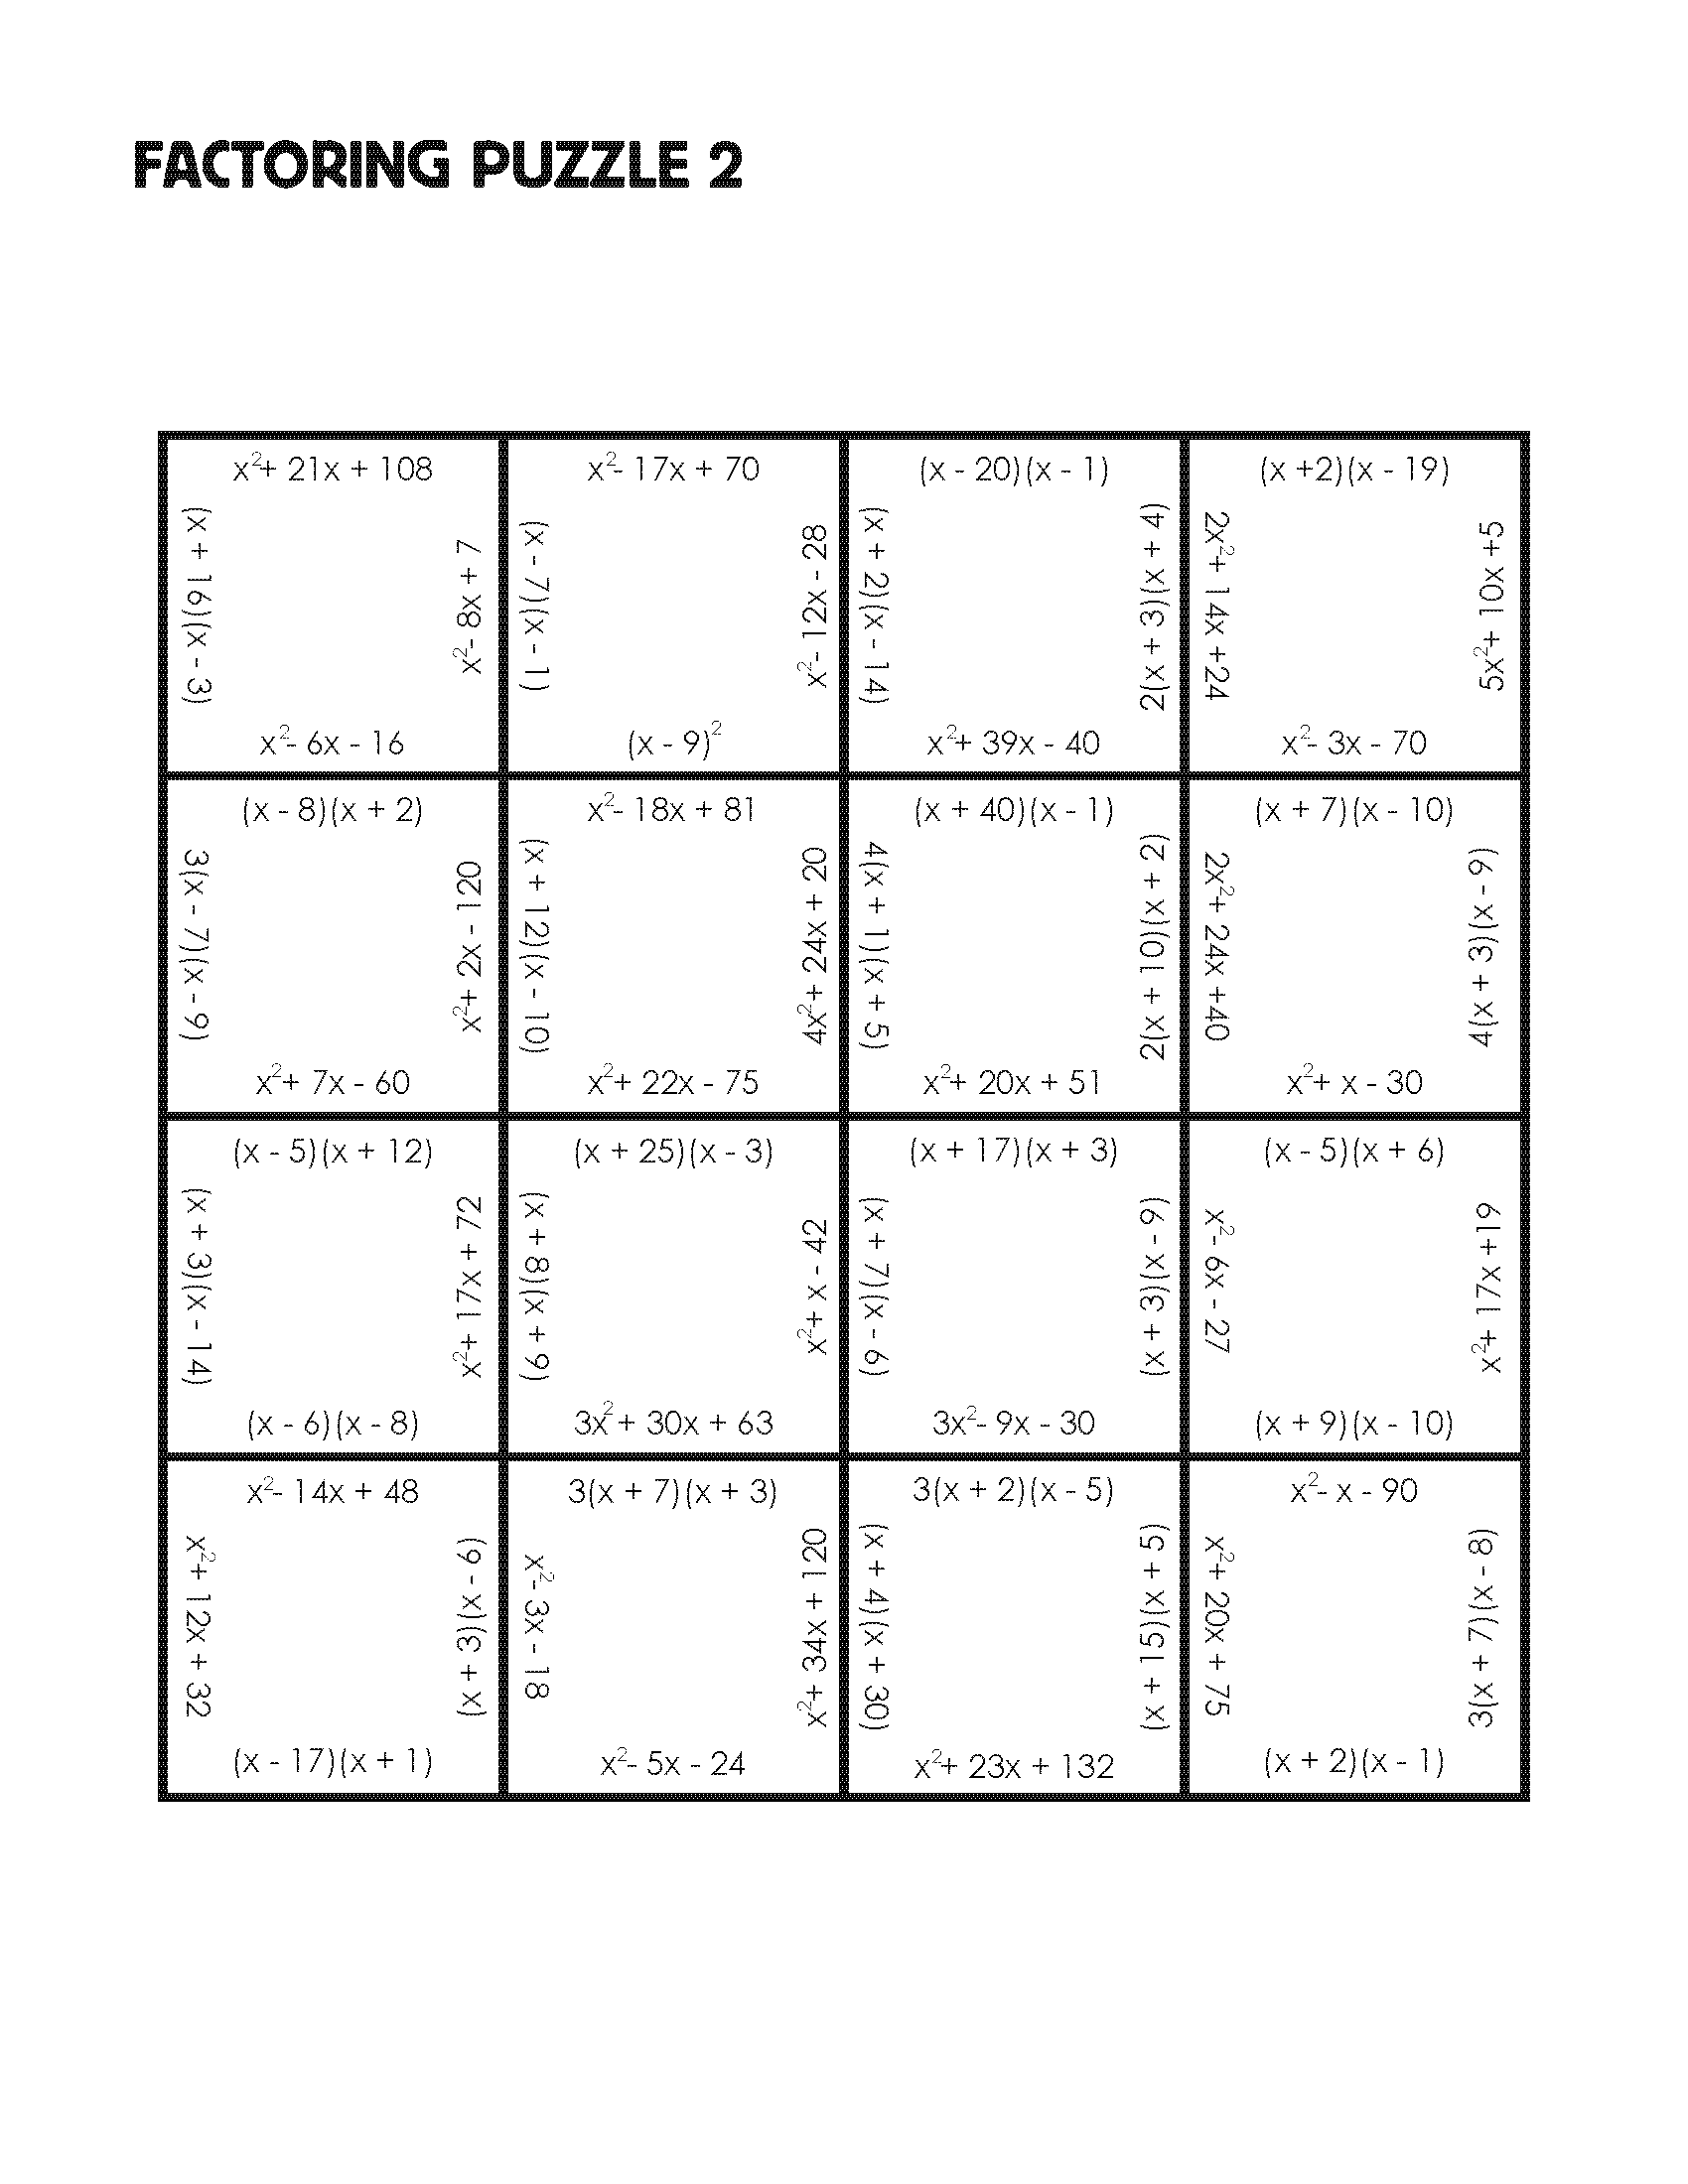 worksheet Factoring Binomials And Trinomials Worksheet factoring puzzle practice version mrmillermath factorpuzzlechallenge